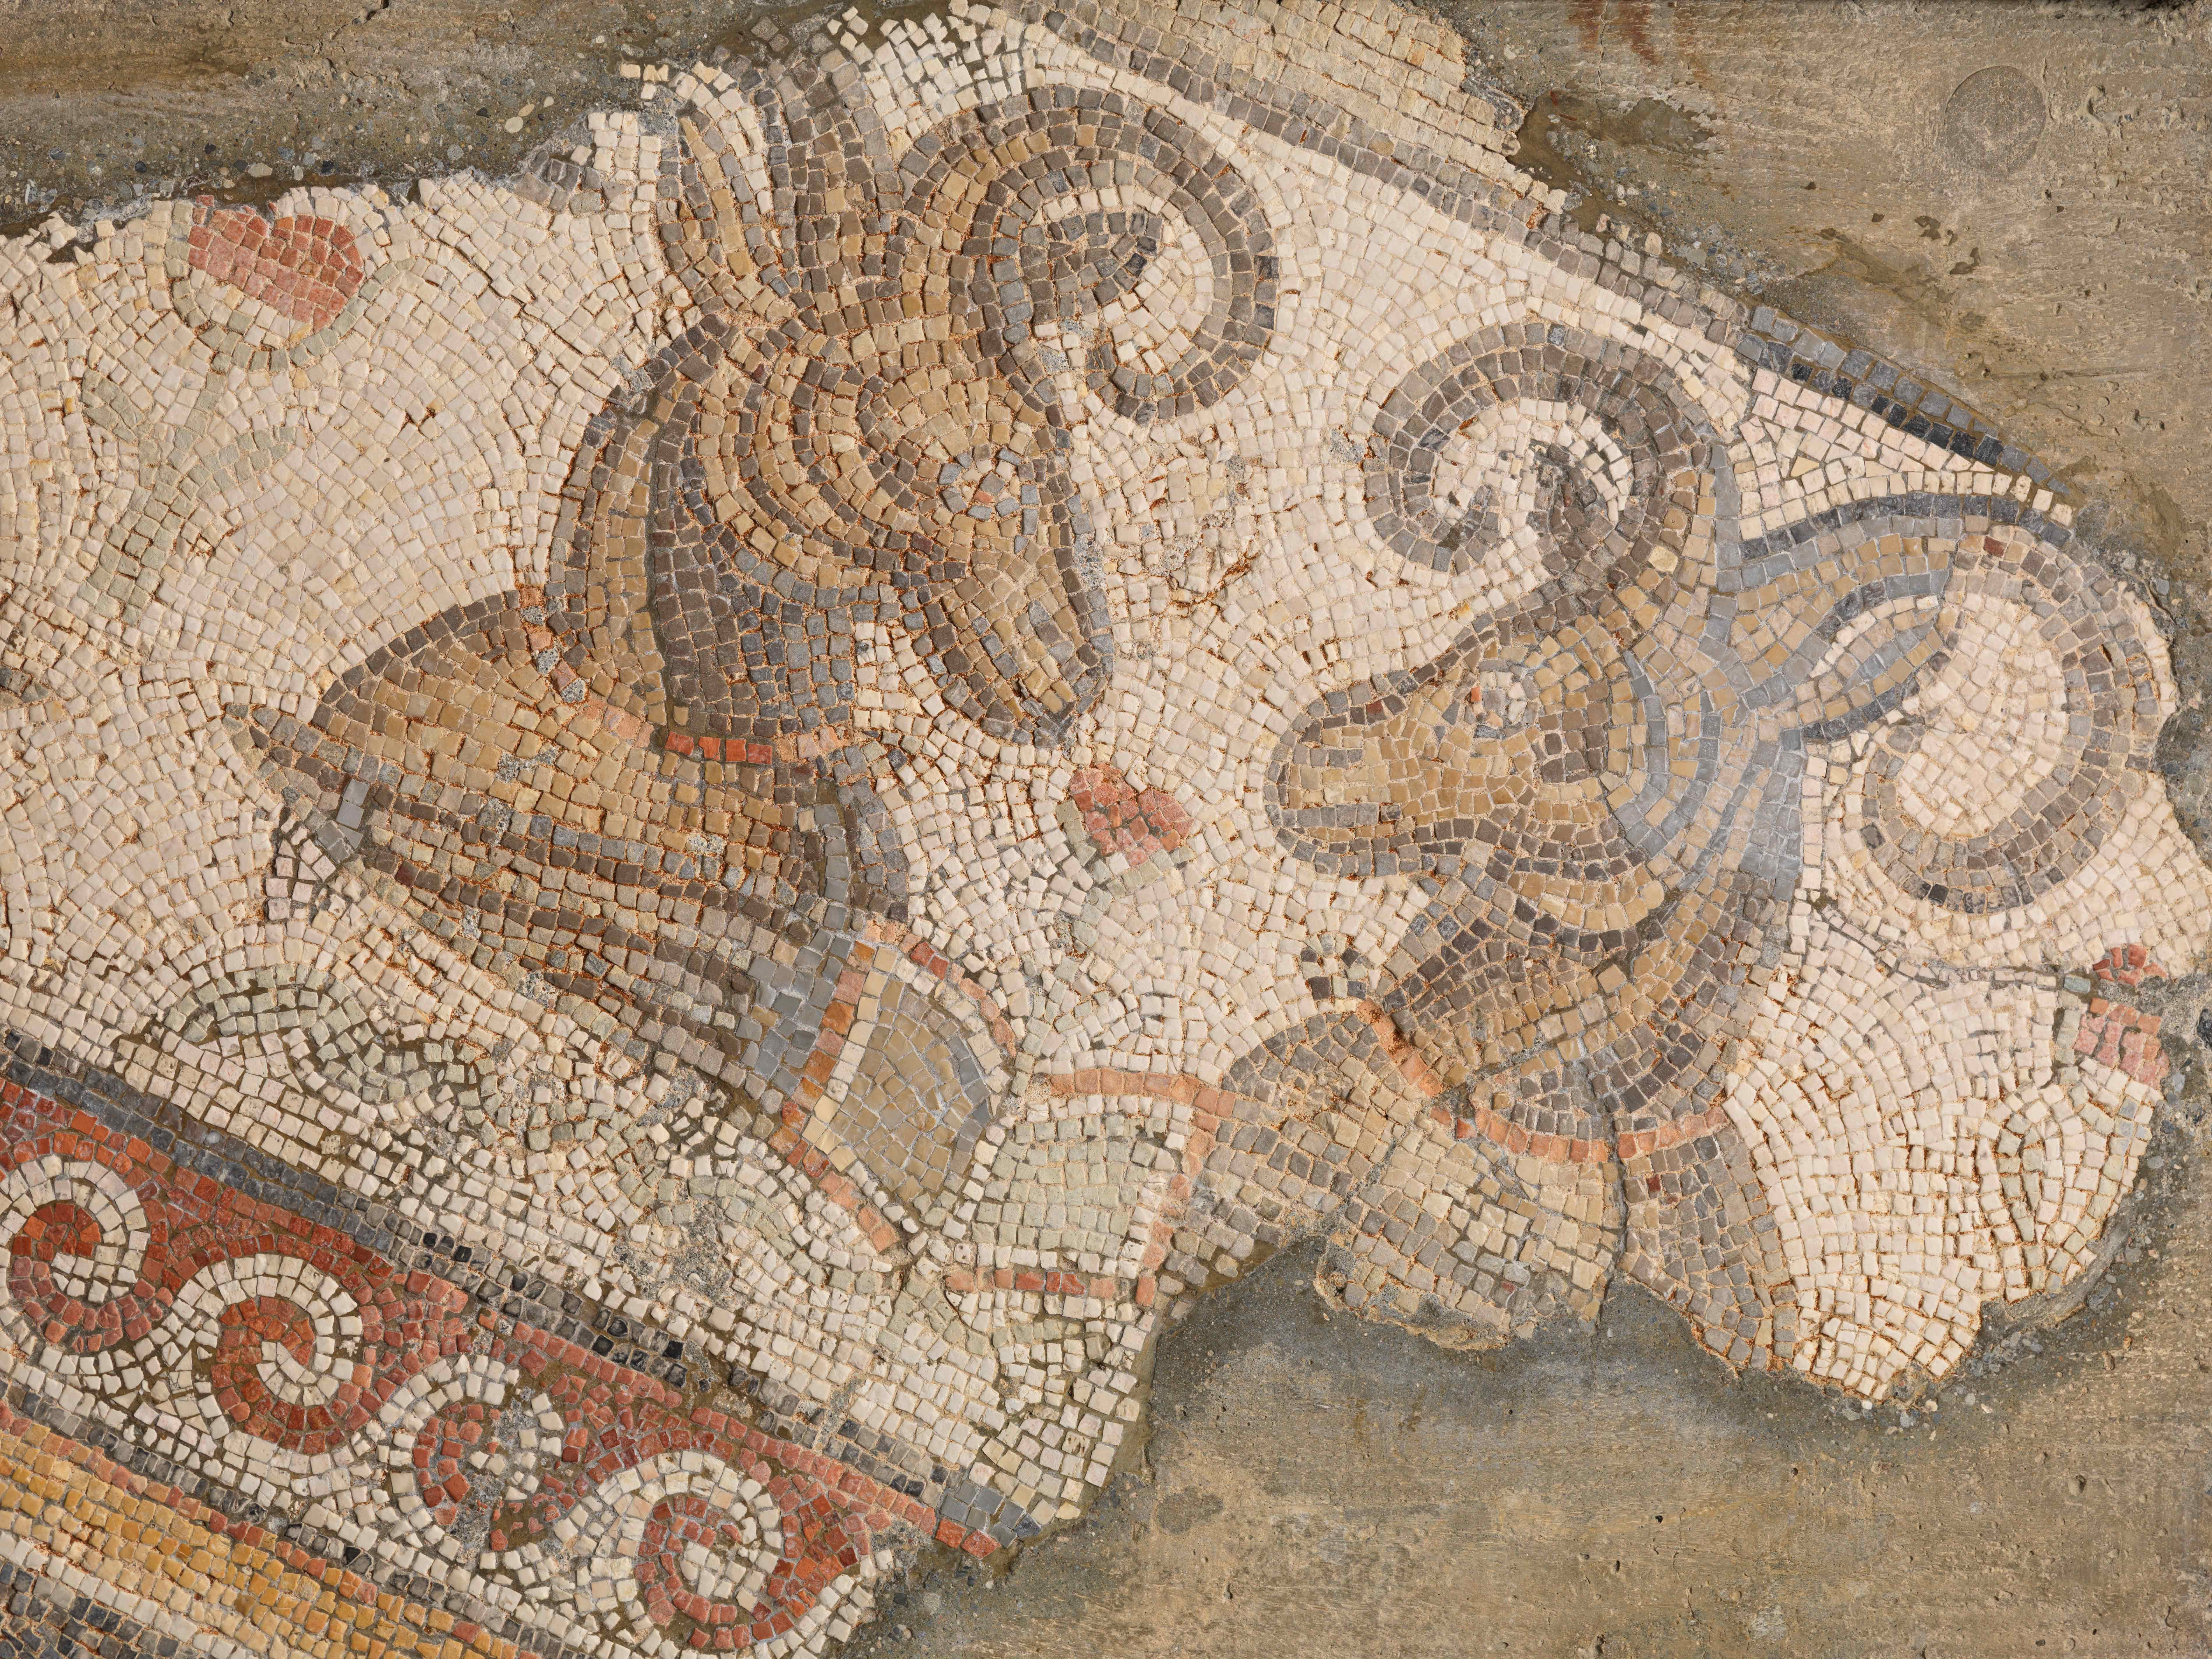 Late Roman Mosaics At The Institute For Advanced Study Institute